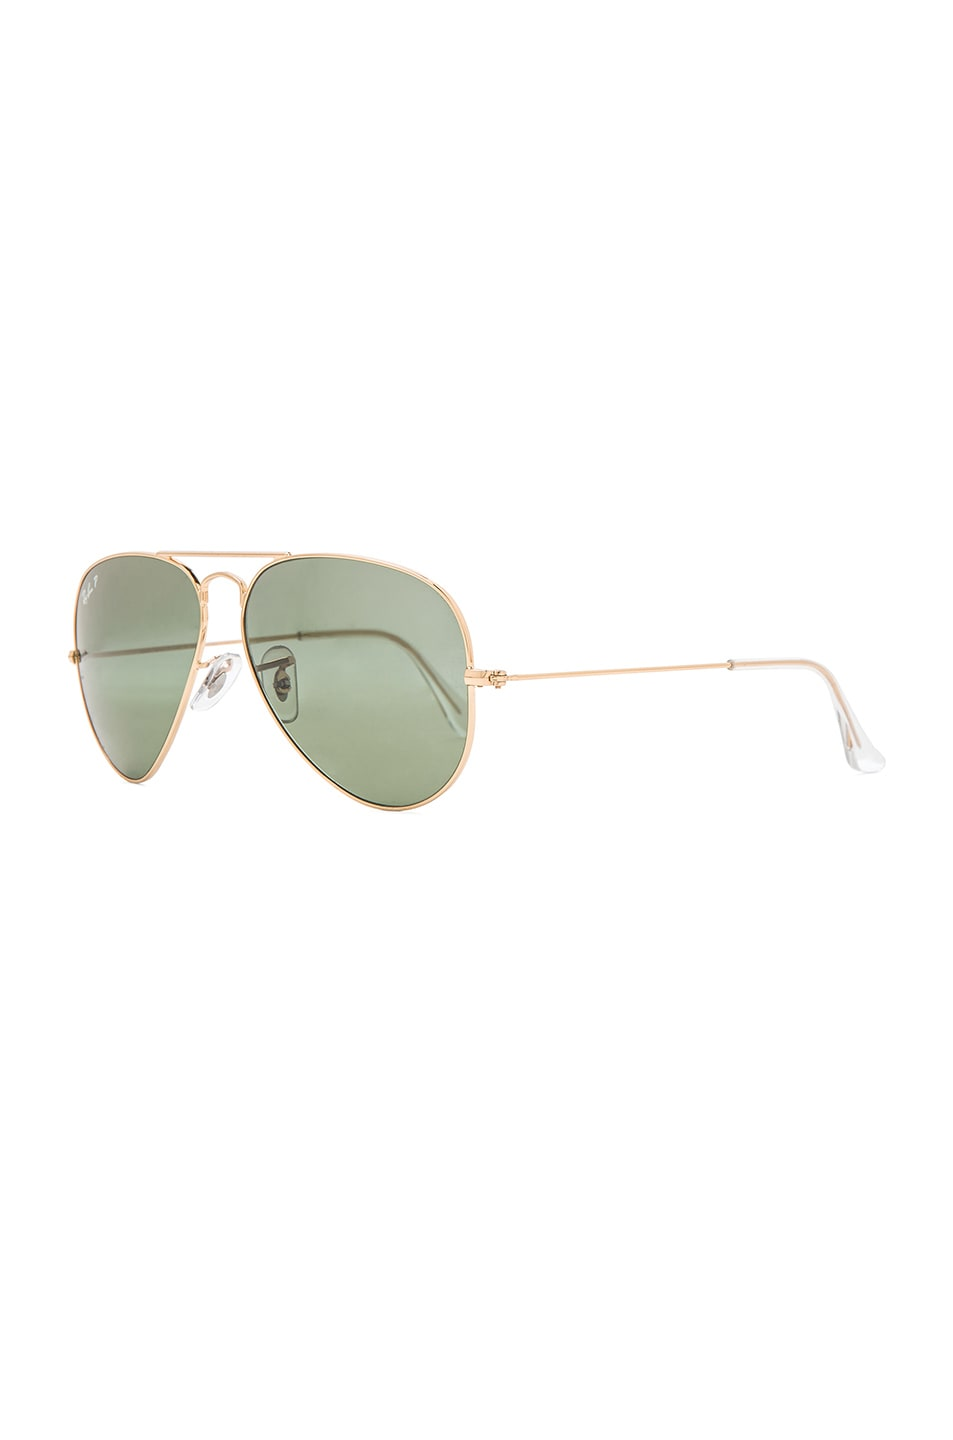 Image 2 of Ray-Ban Aviator Polarized Sunglasses in Gold